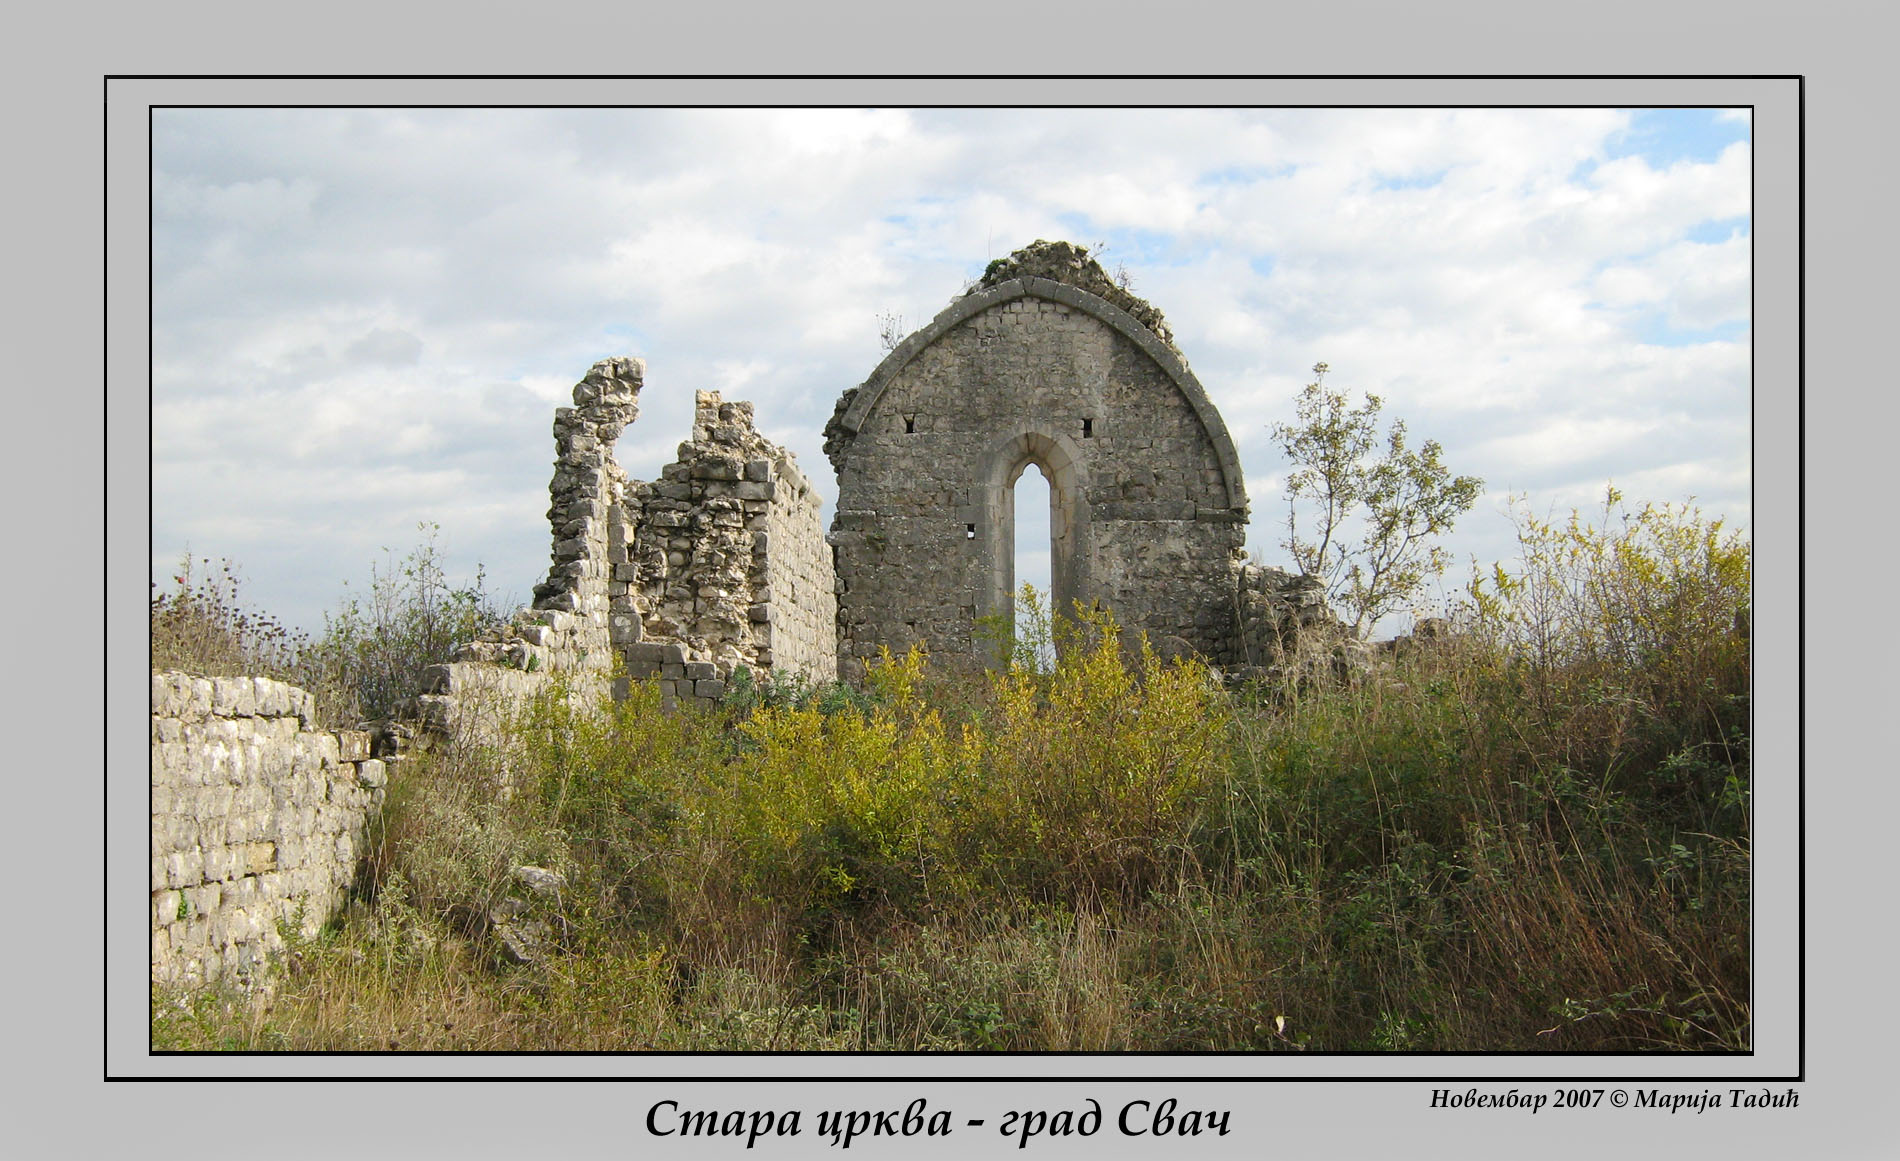 old church in the city that have had churches as t tadic maria